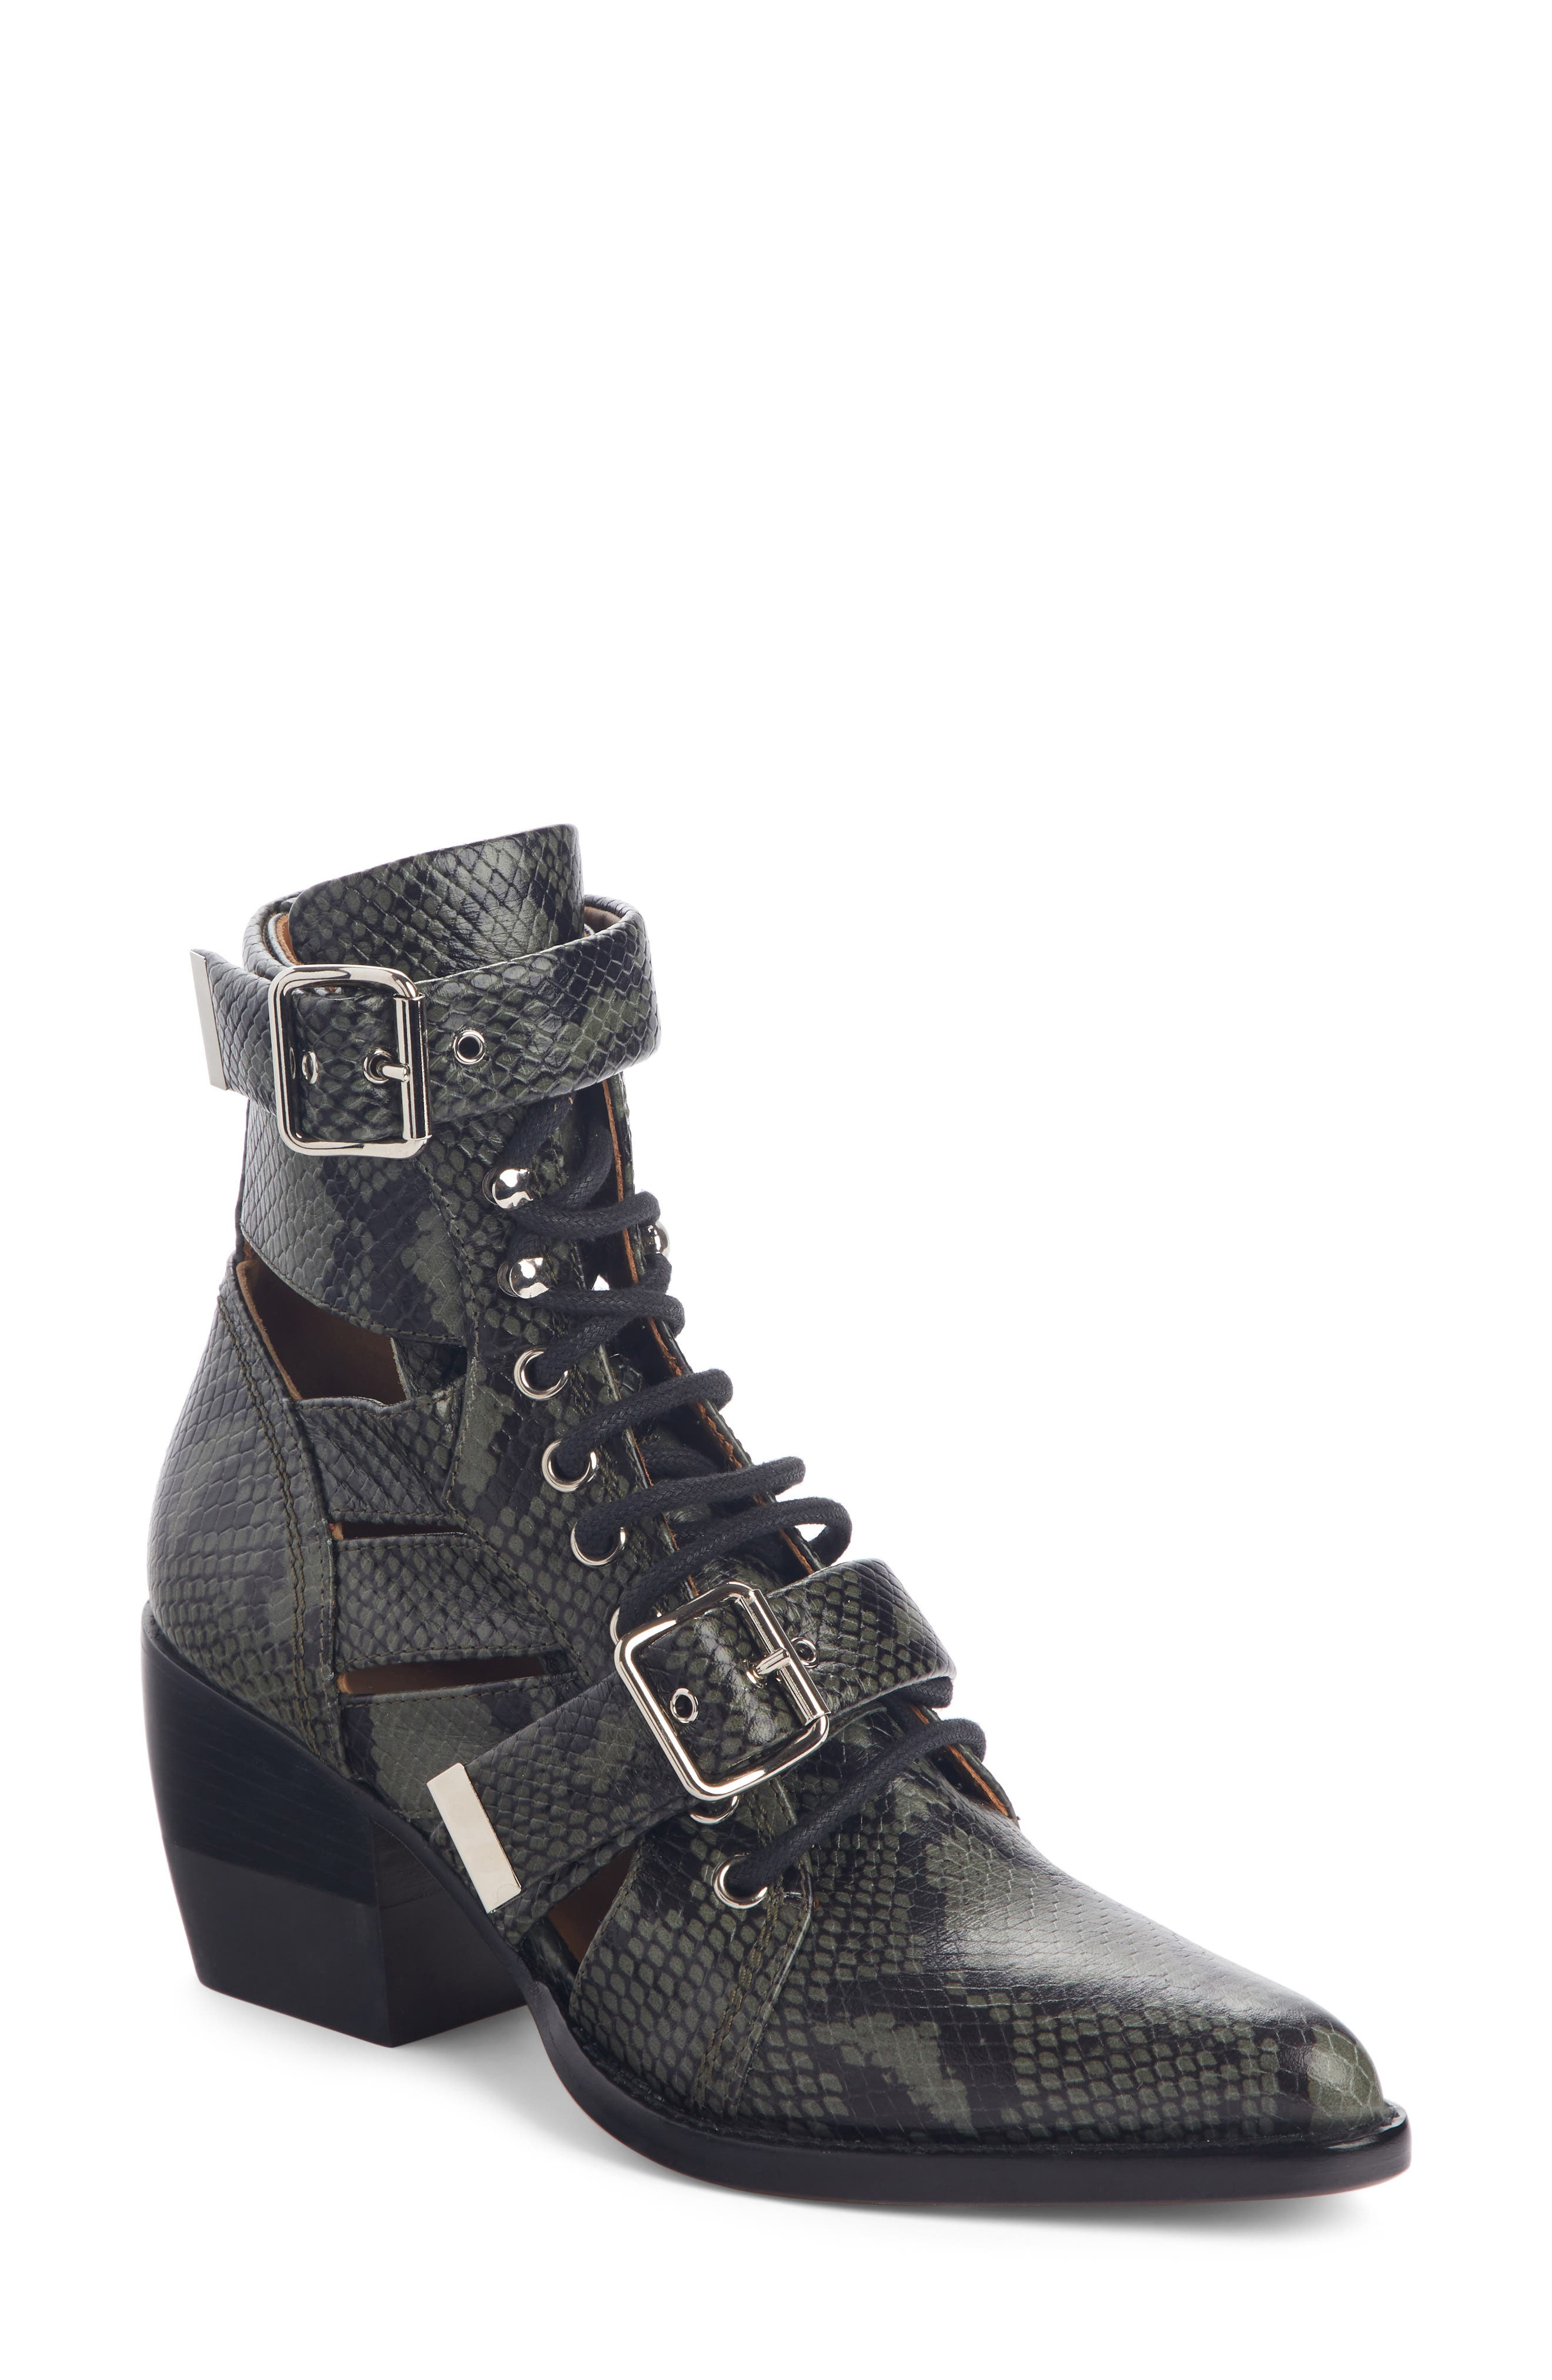 Chloe Rylee Caged Pointy Toe Boot - Green